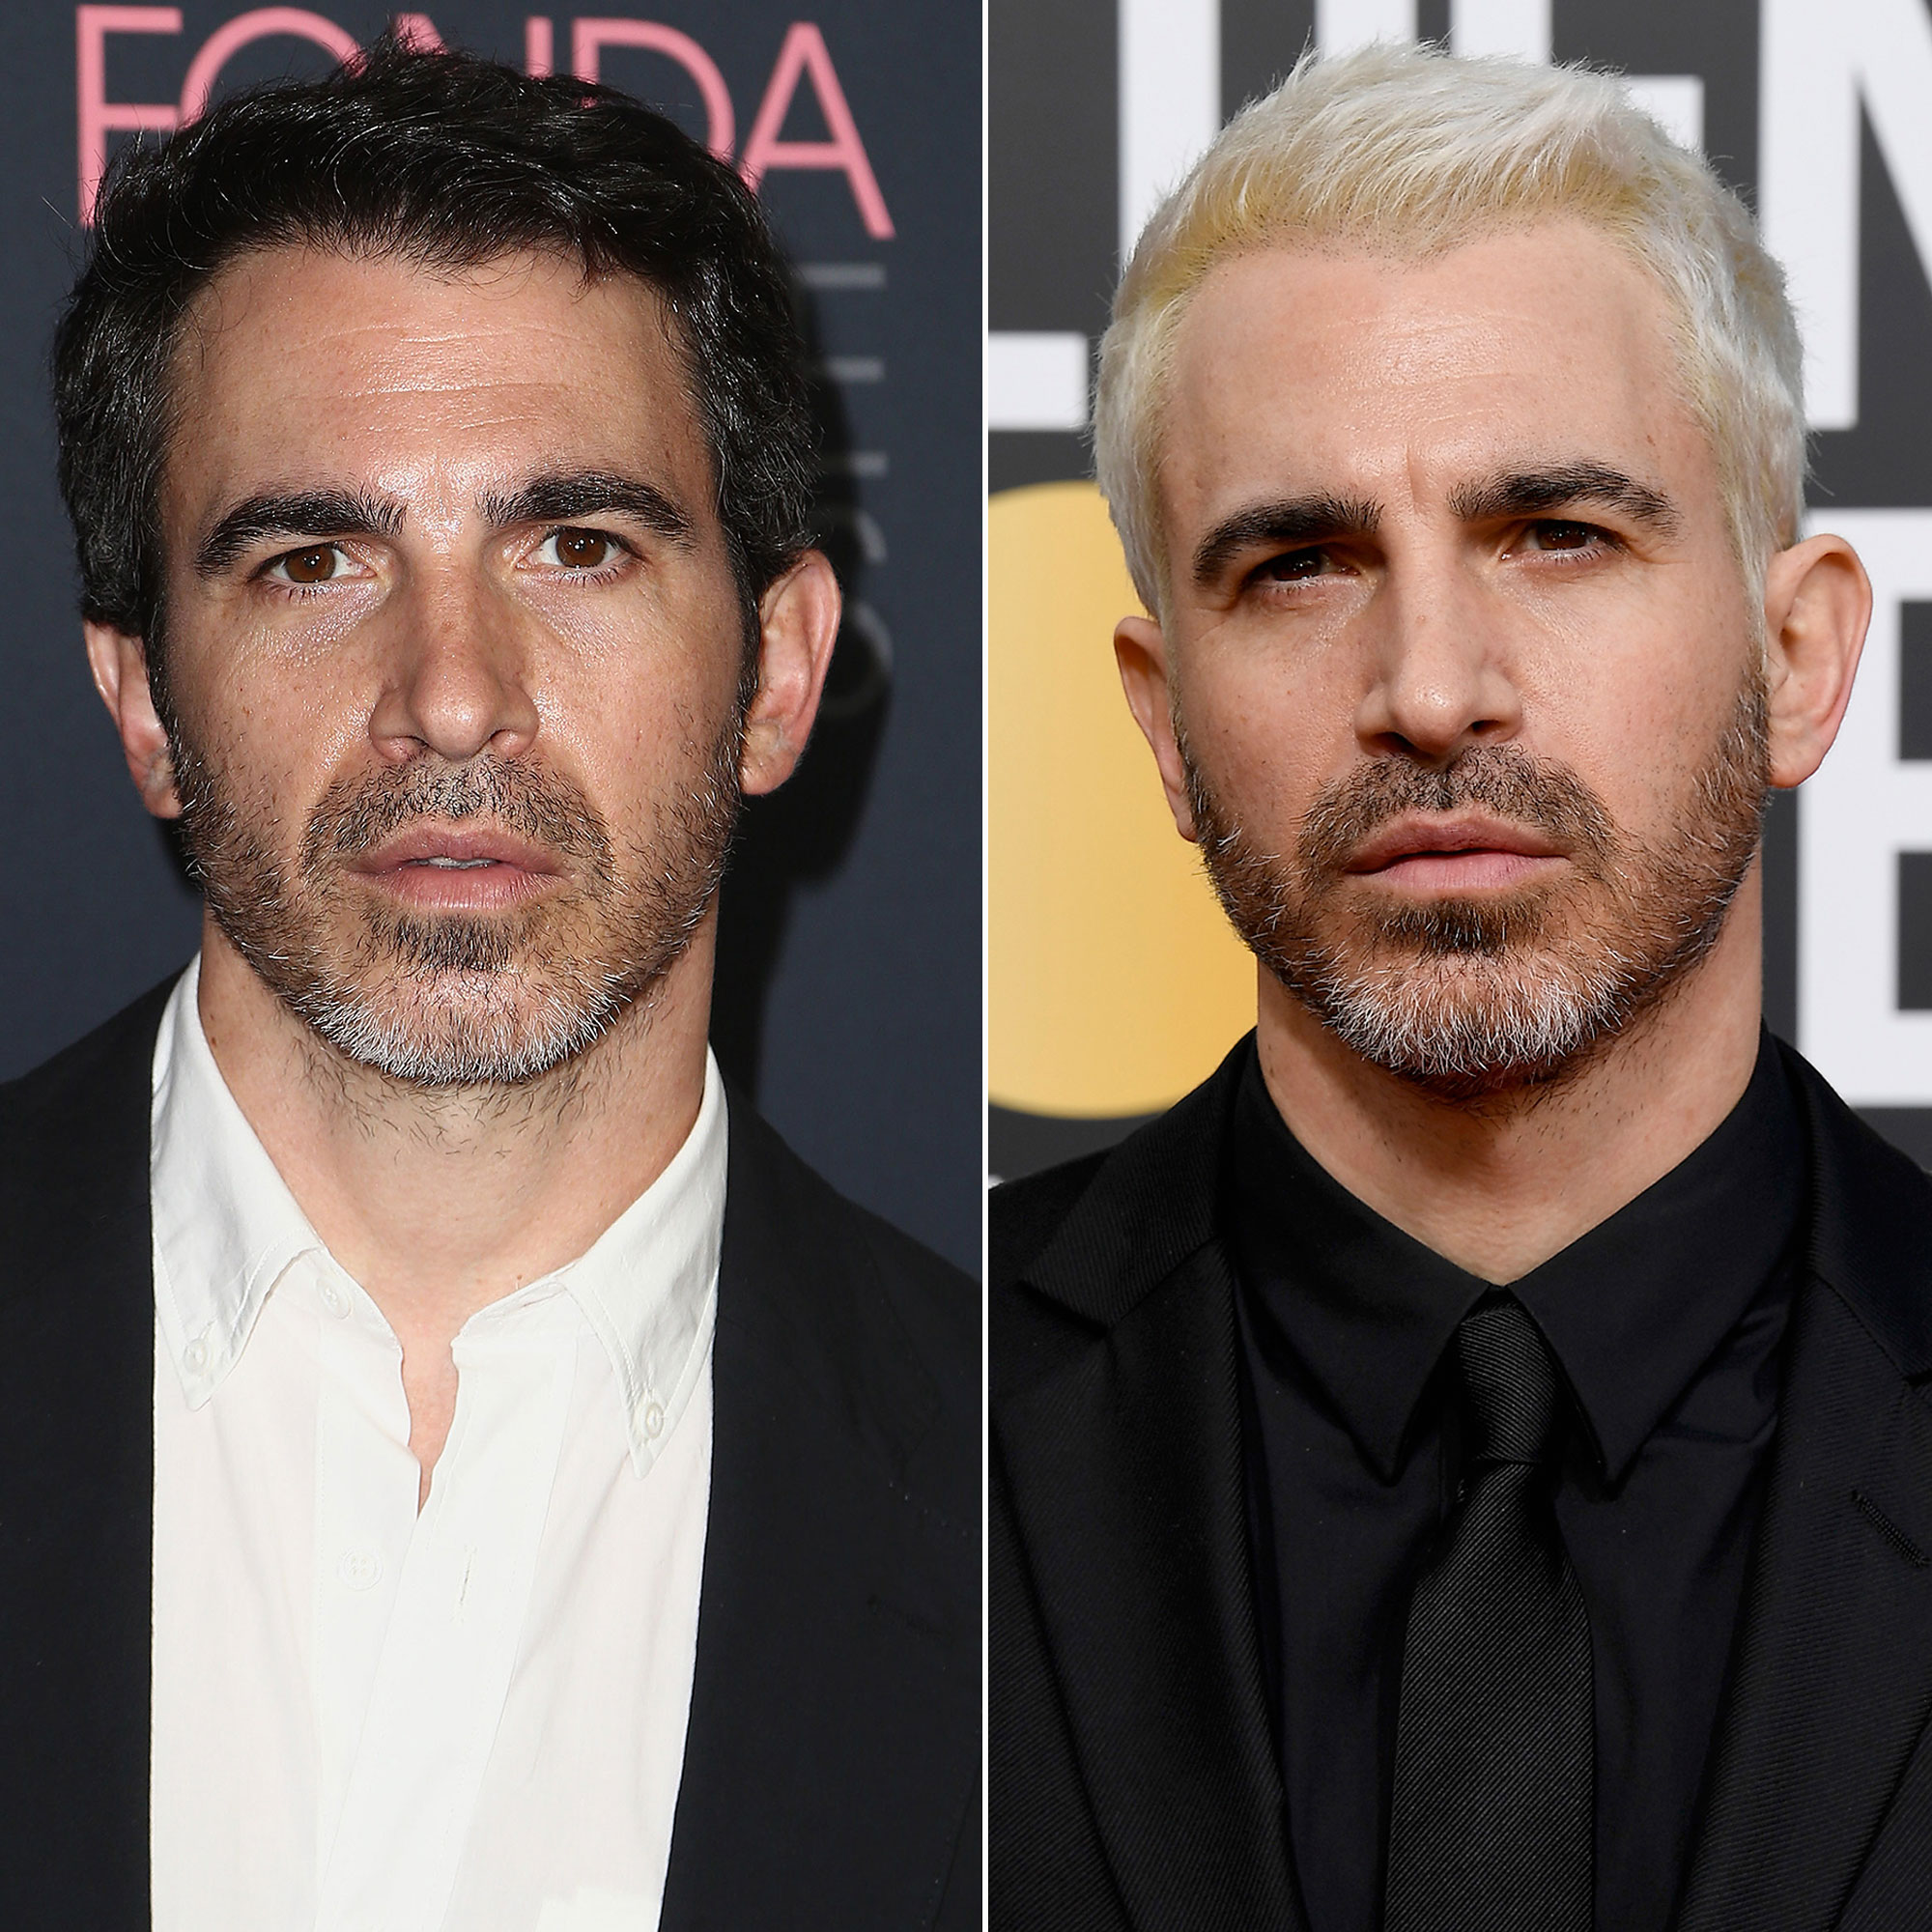 Celebrity Hair Transformations of 2019 - When The Mindy Project hunk hit the red carpet at the Golden Globes on Sunday, January 6, with a platinum cropped cut, social media lost its collective mind . The shade switch is likely for his latest role as villain Victor Zsaszin in the forthcoming flick Bird of Prey .